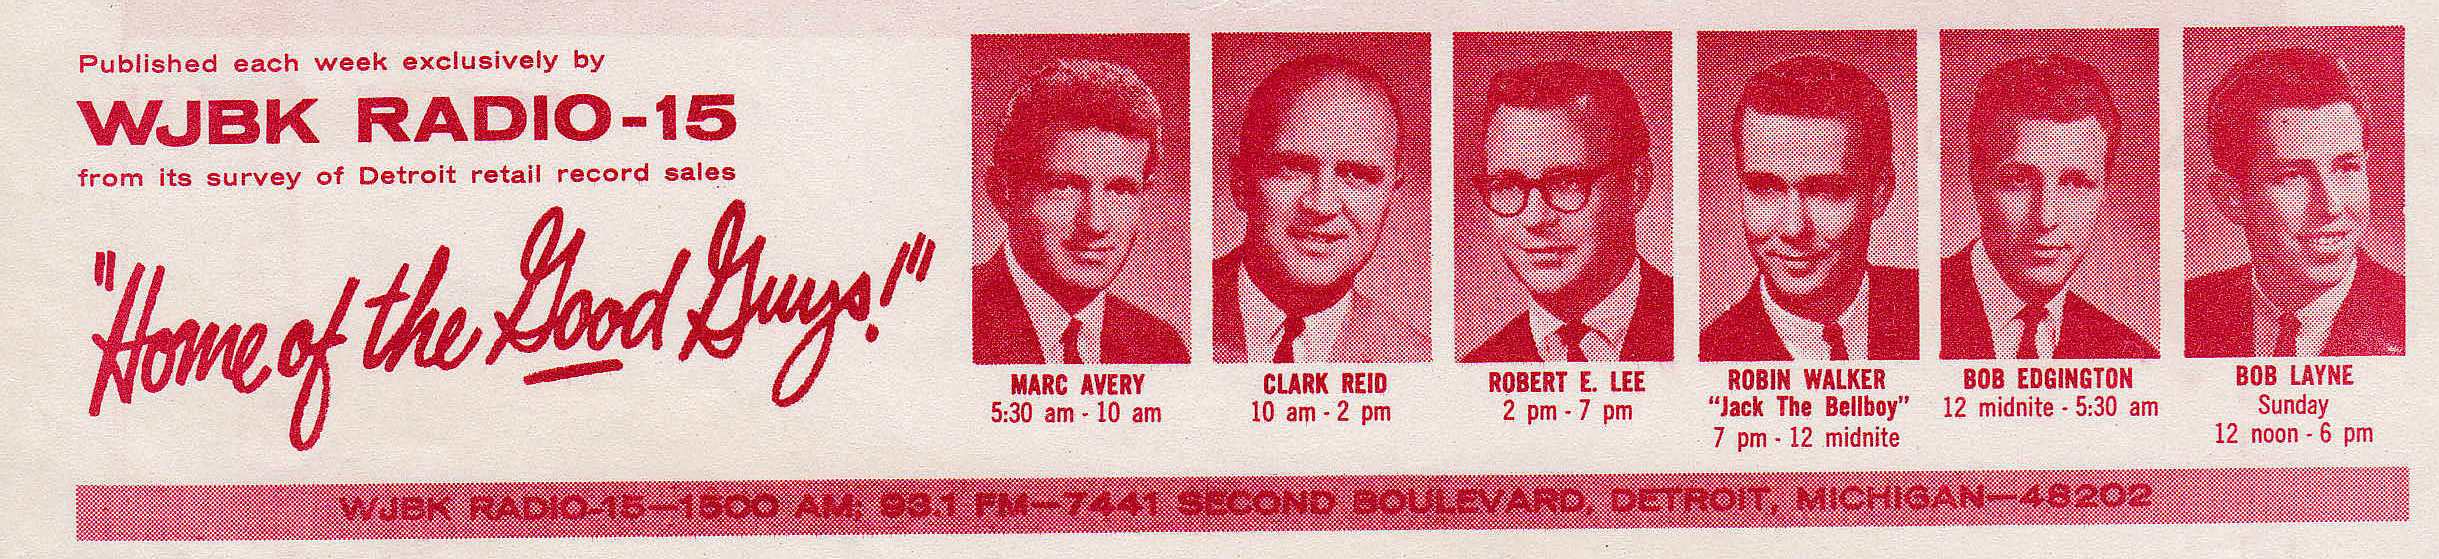 WJBK-SURVEY-JUNE-26-1964-FRONT (MCRFB Bottom Tag)